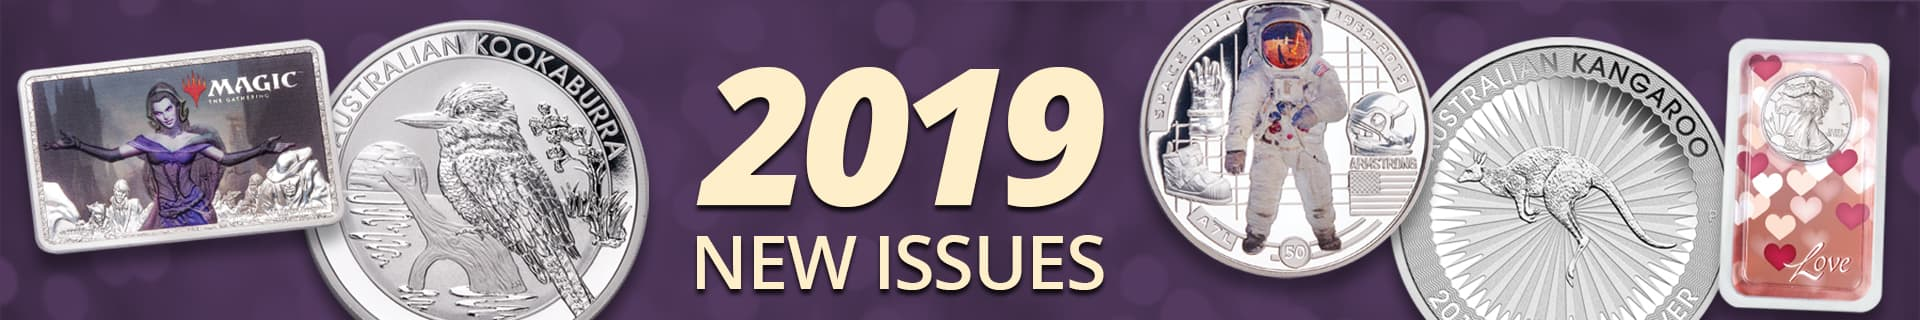 Be one of the first to get these 2019 New Issues!